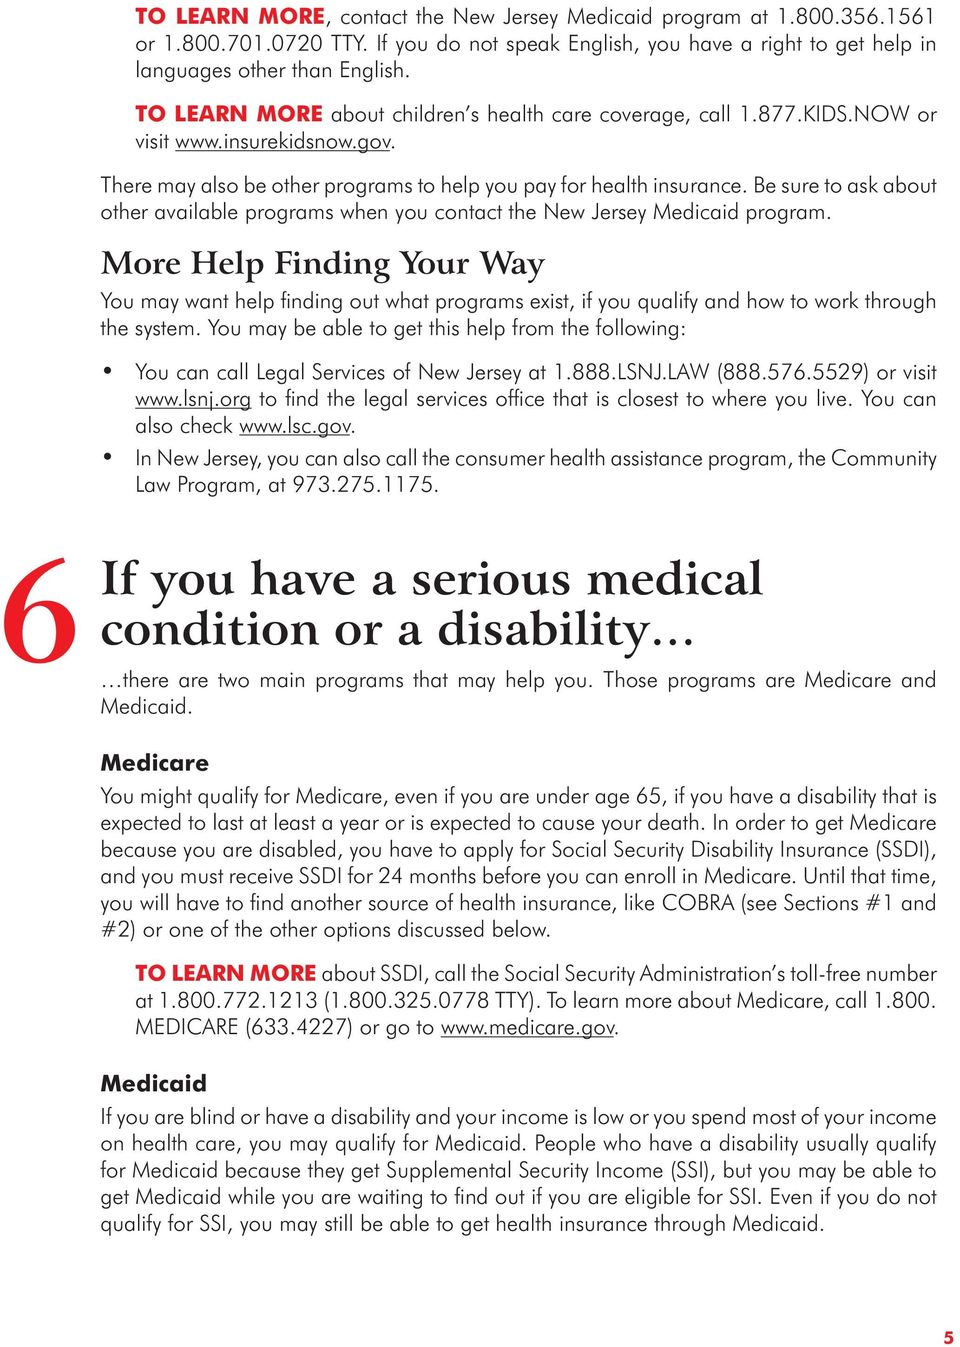 Be sure to ask about other available programs when you contact the New Jersey Medicaid program.